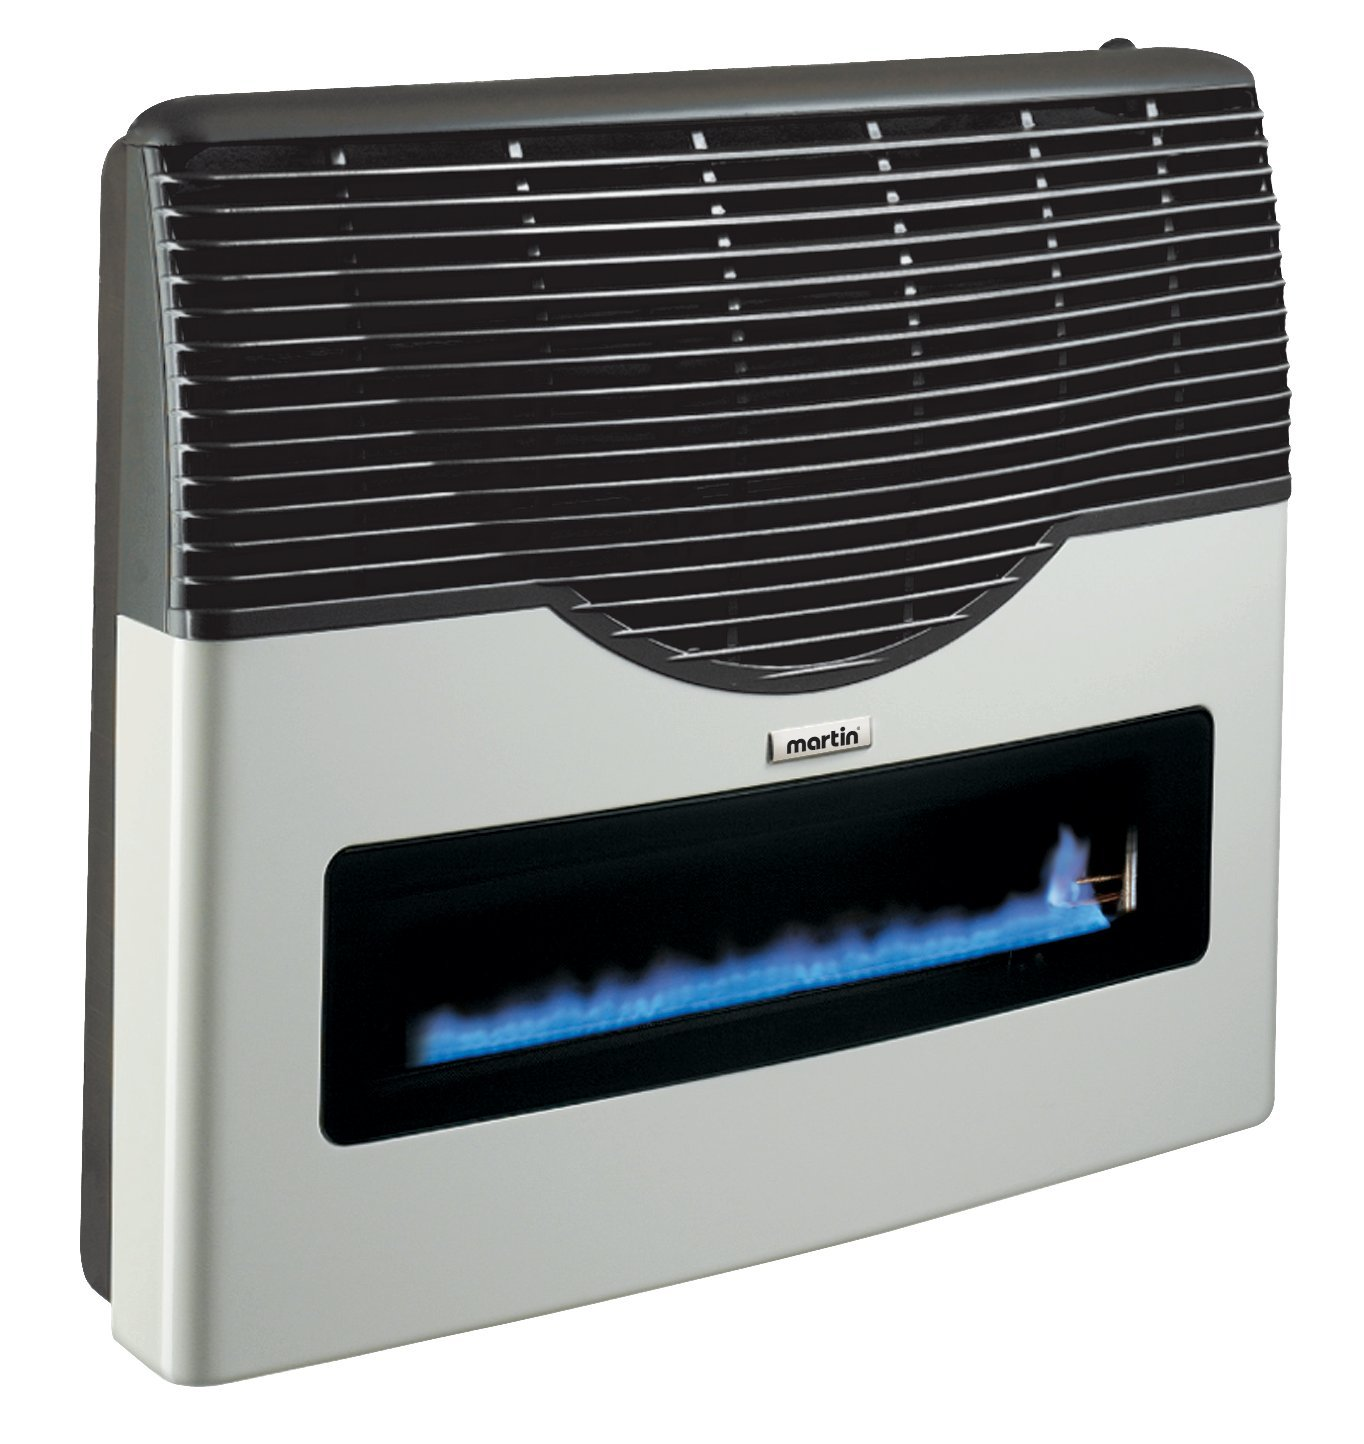 Martin Direct Vent Propane Wall Furnace Heater Thermostat 20,000 Btu